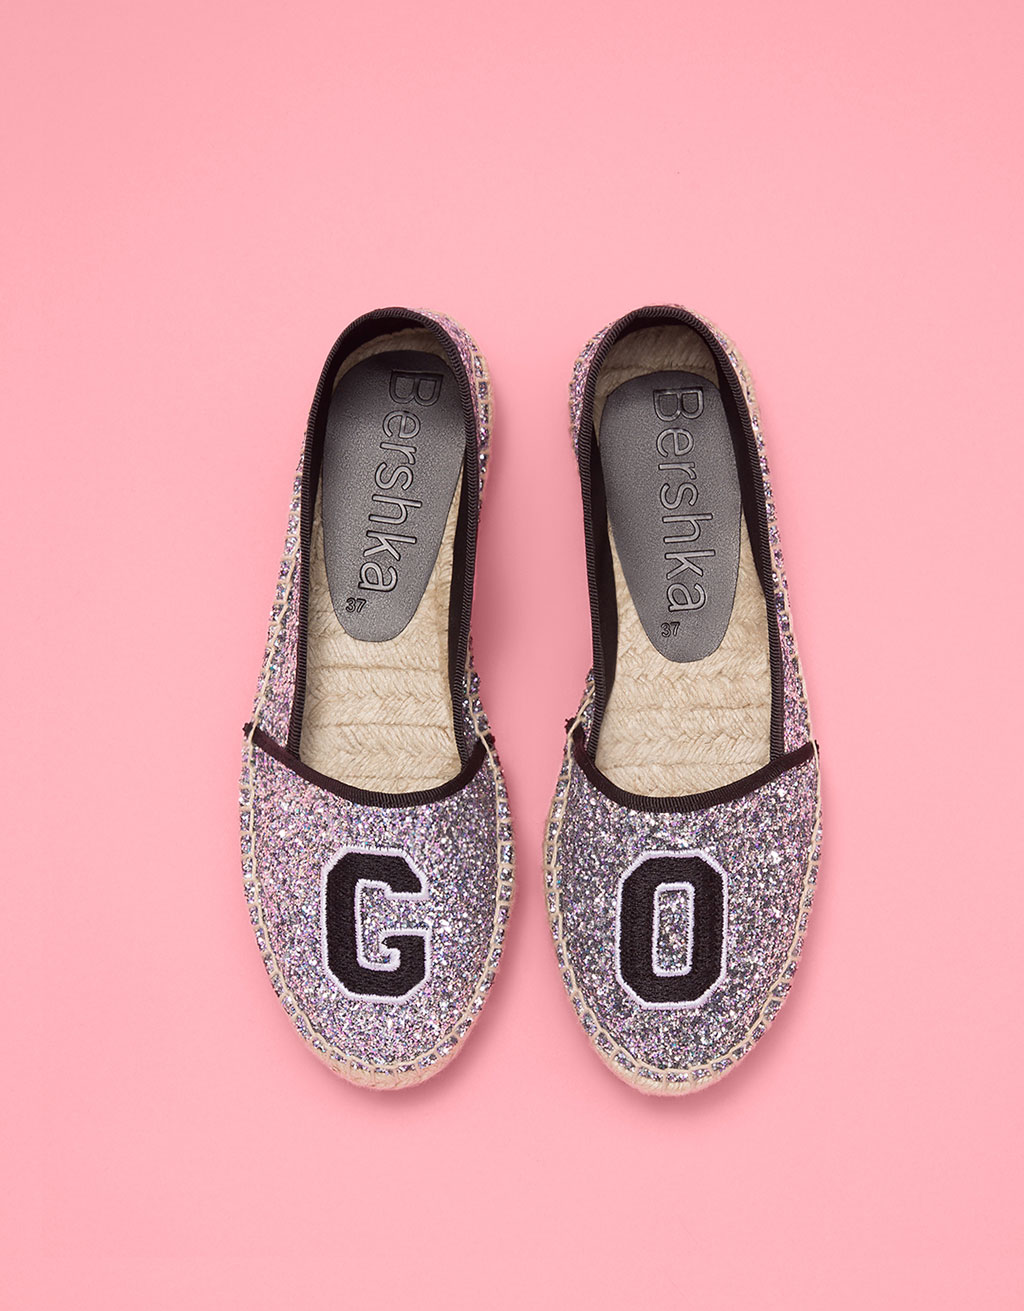 Jute espadrilles with slogan and sparkle